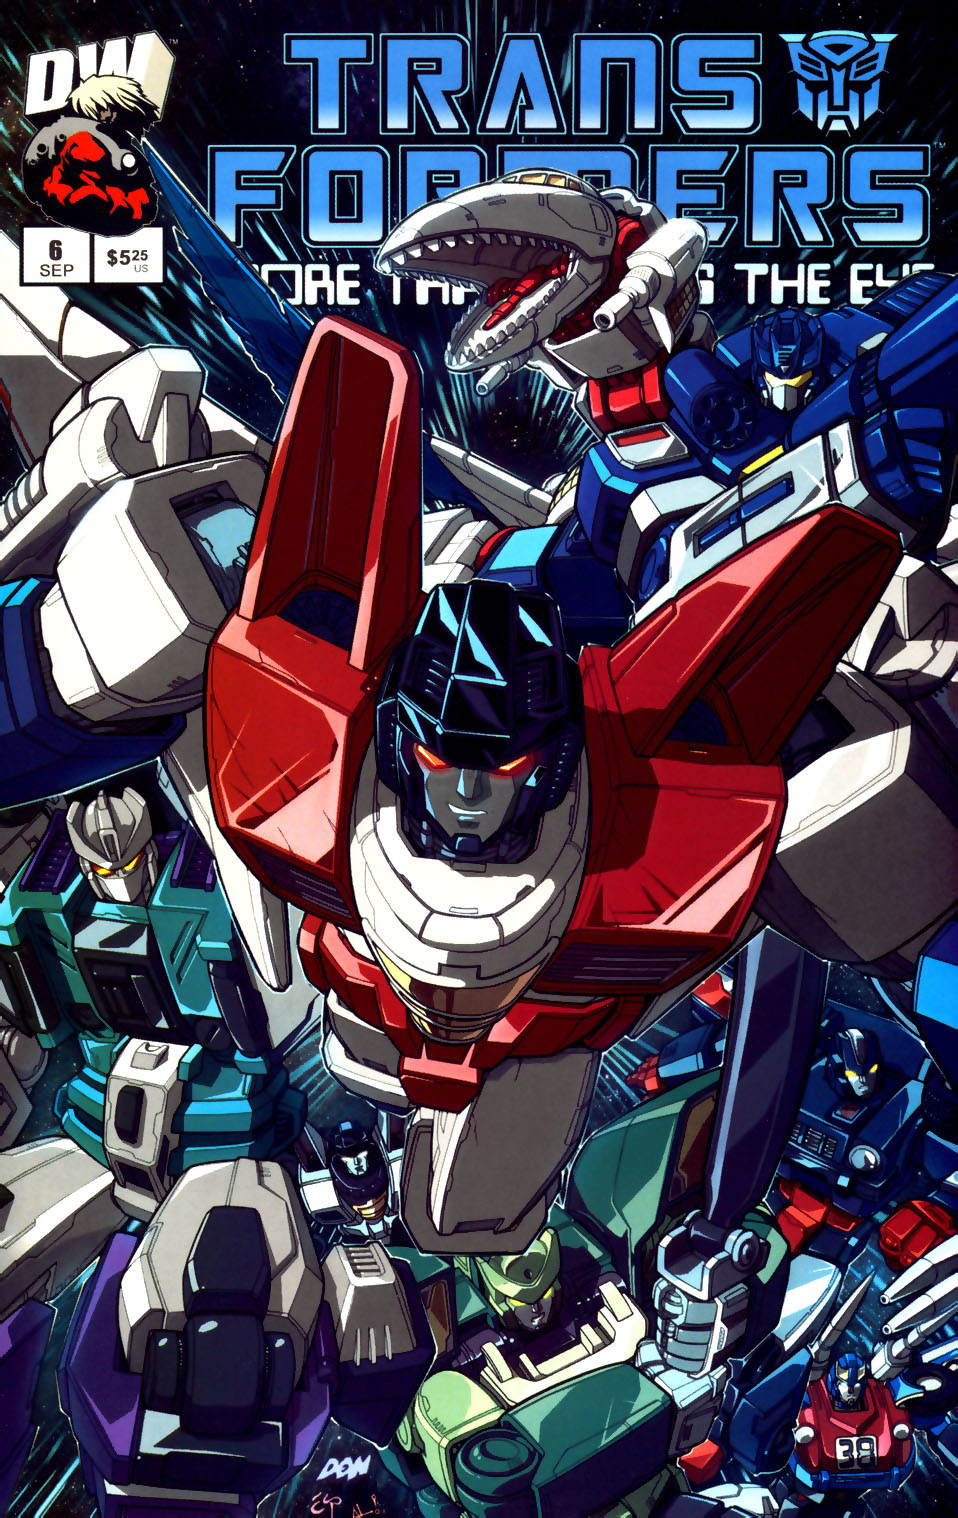 Read online Transformers: More than Meets the Eye comic -  Issue #6 - 1